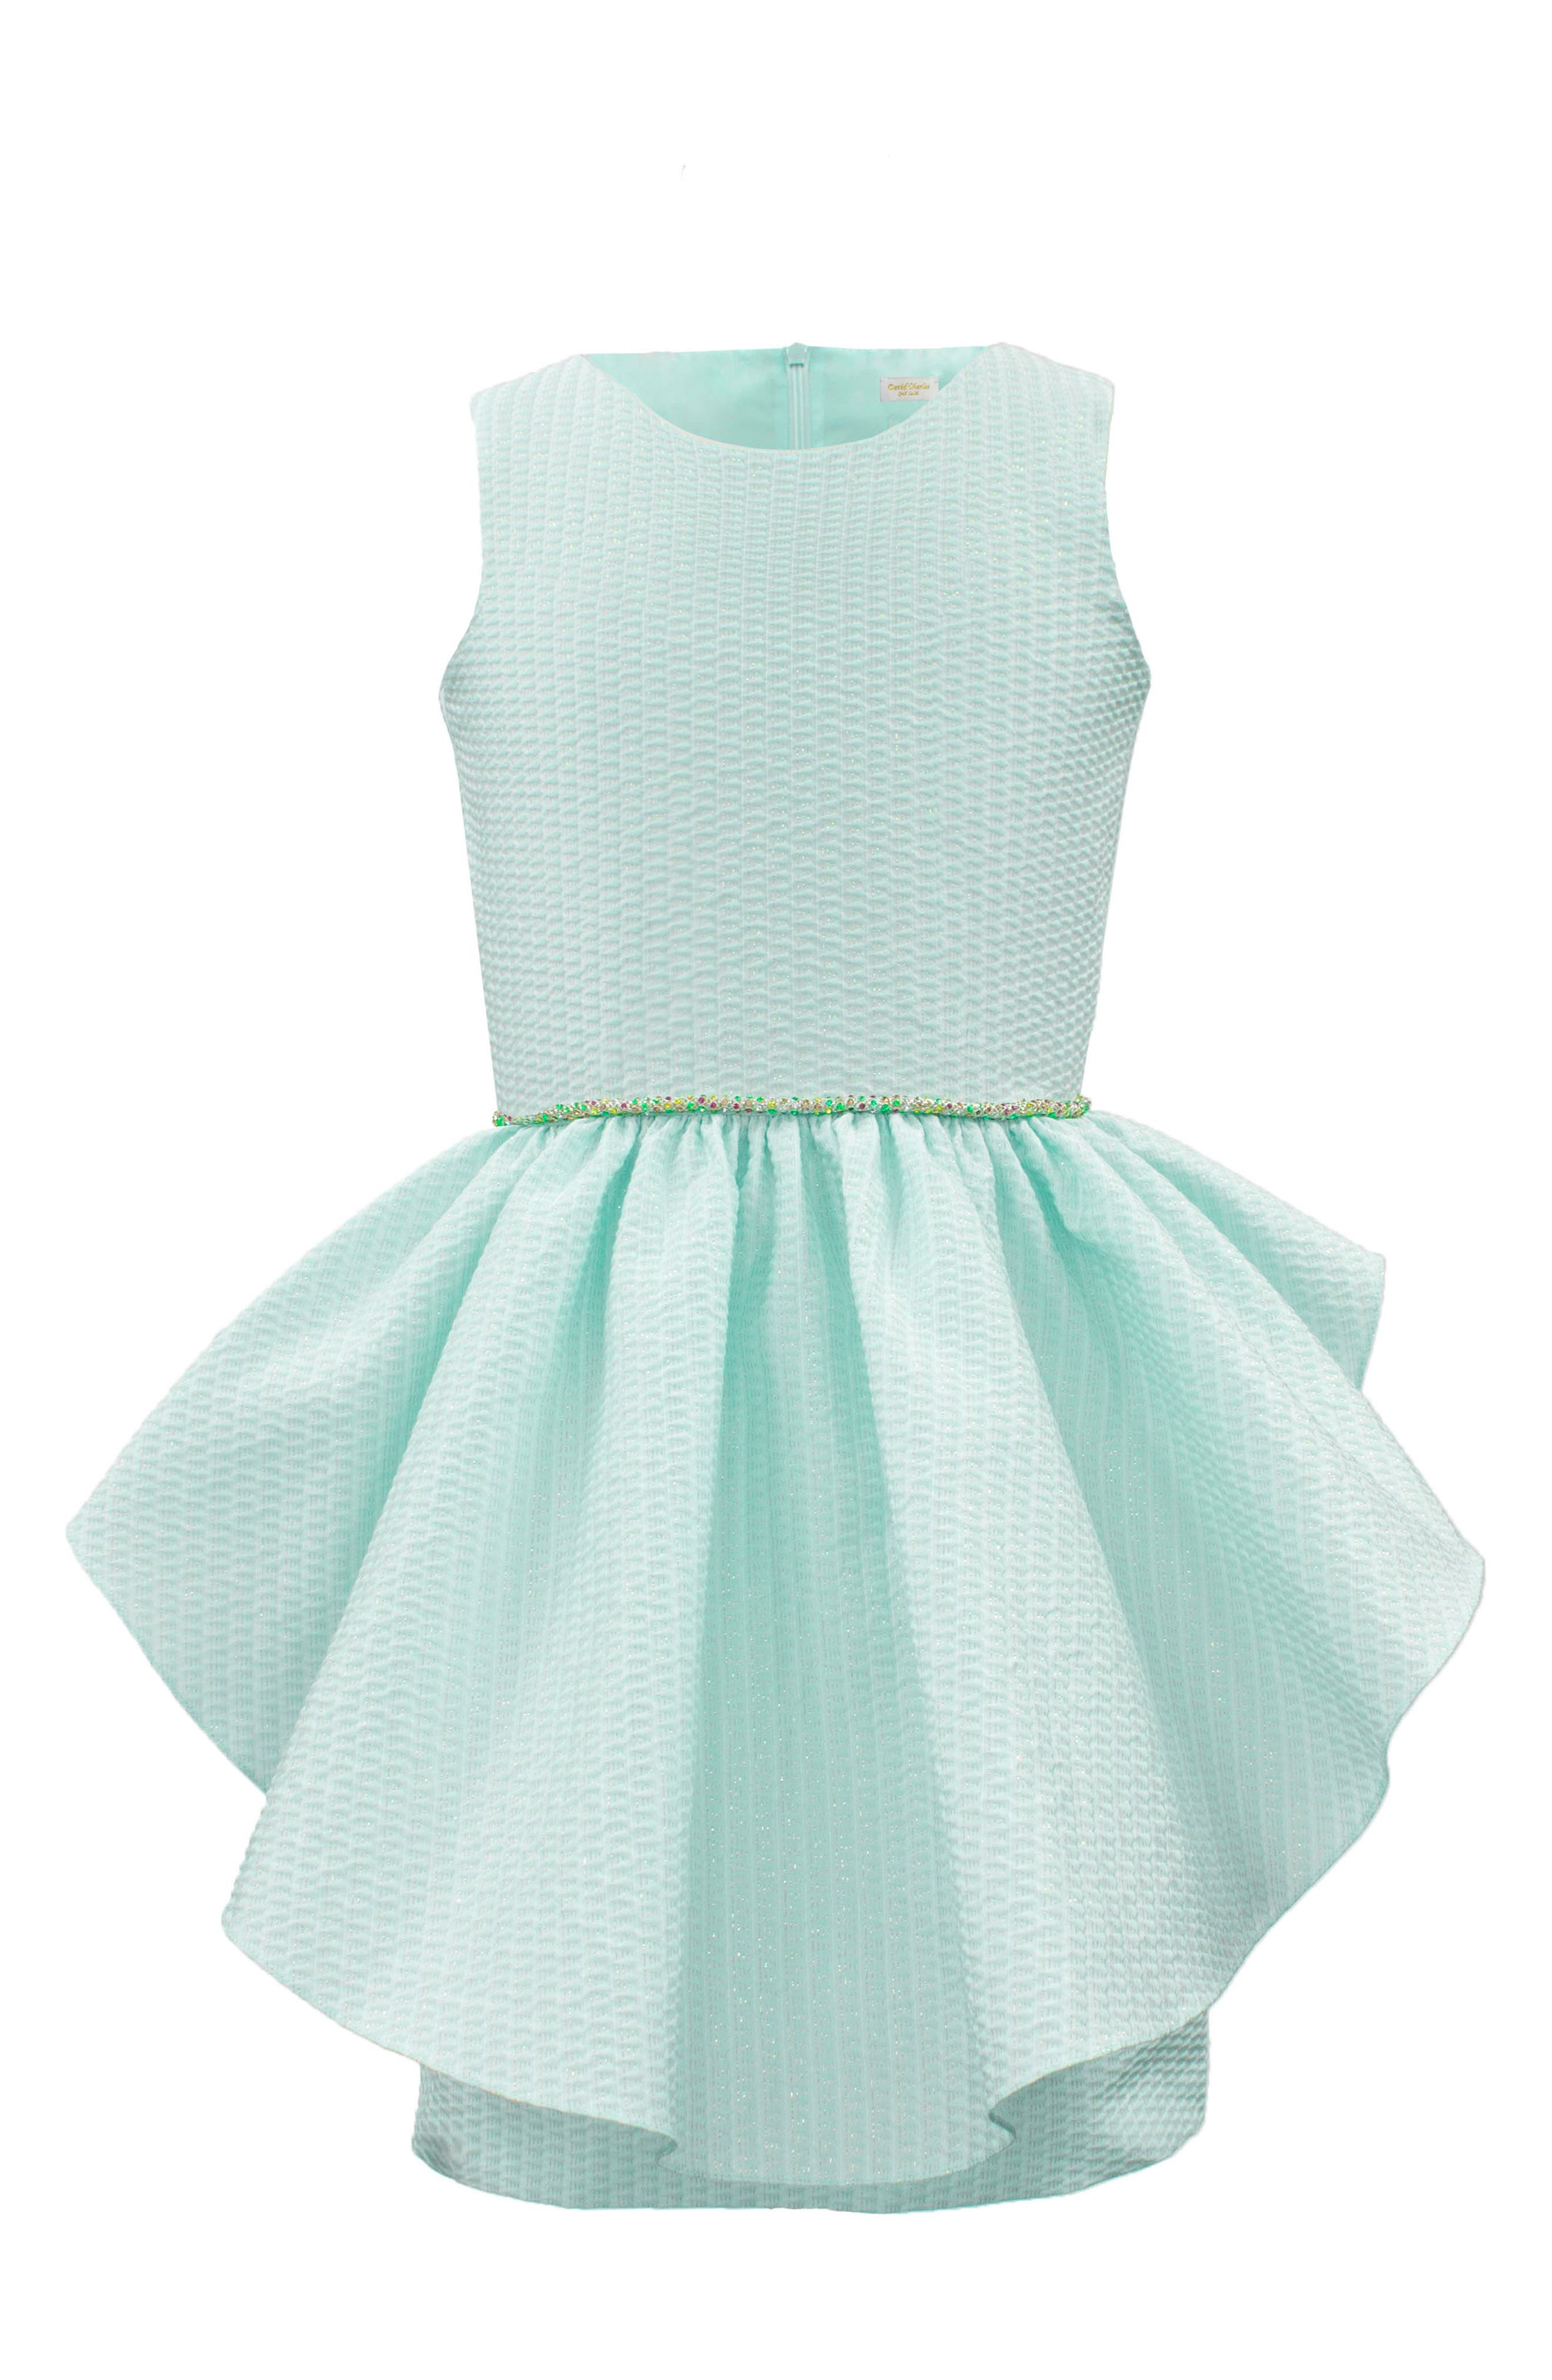 Ruffle Overlay Brocade Dress,                         Main,                         color, Turquoise